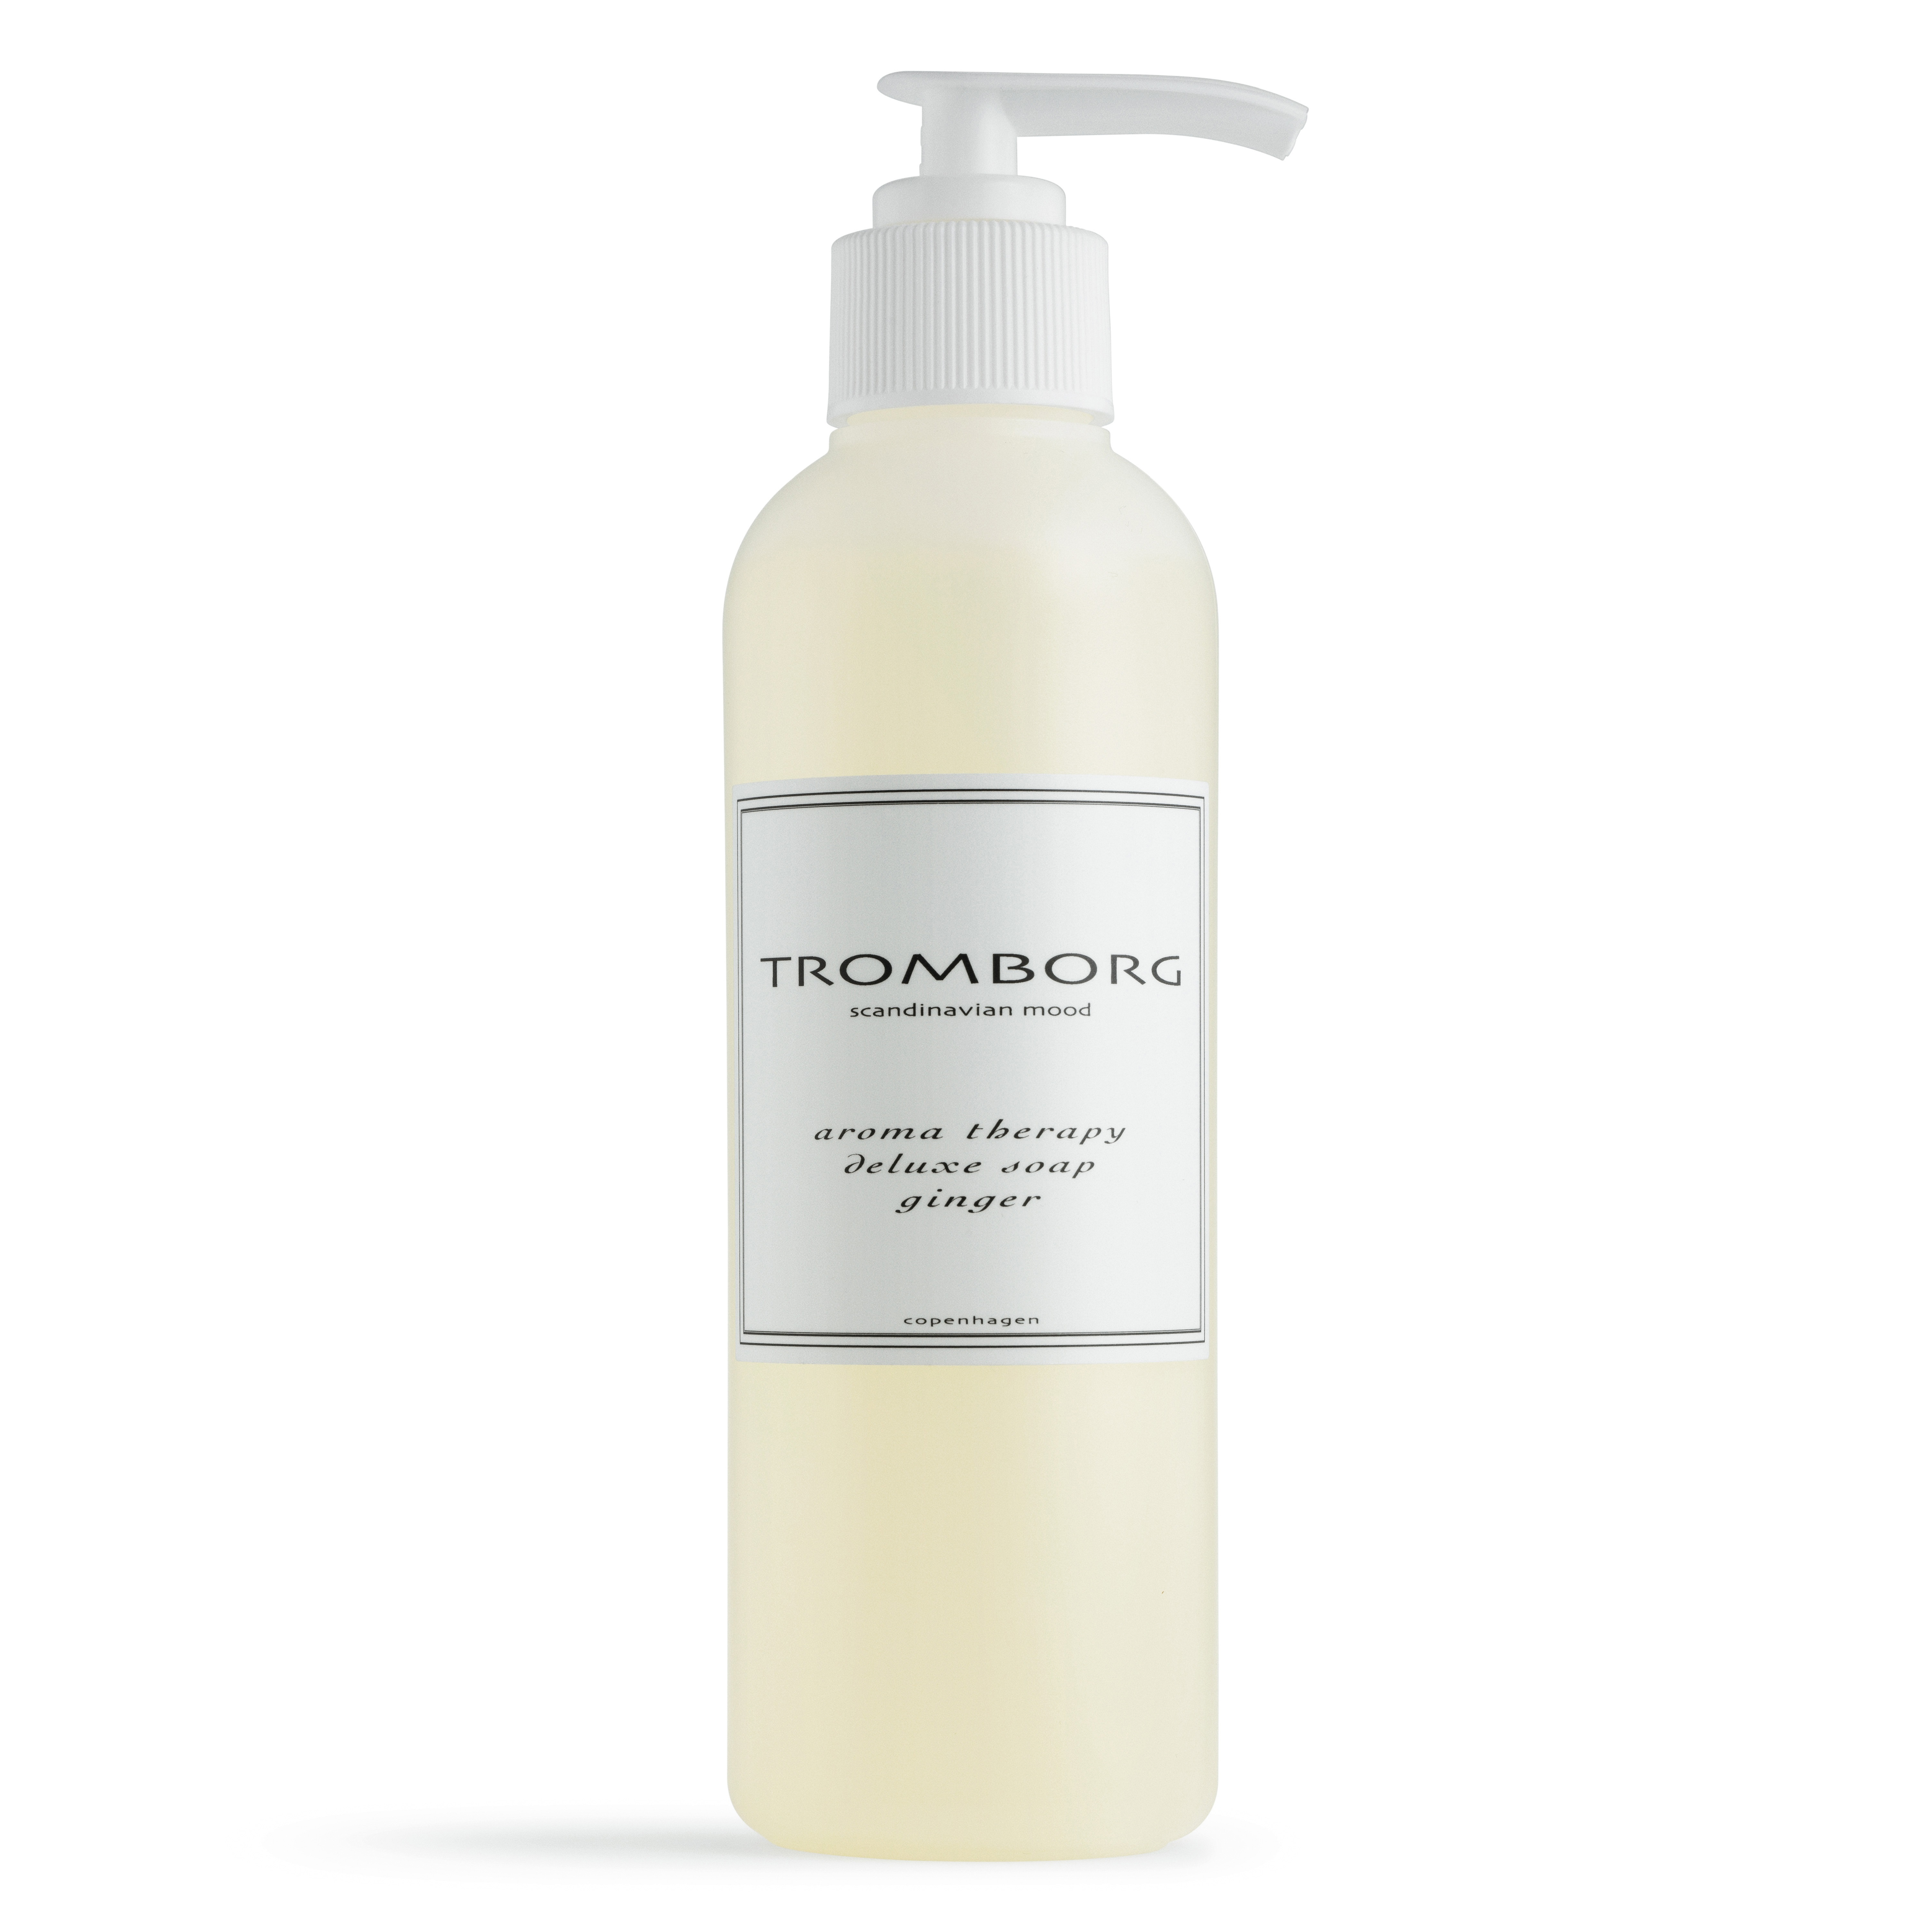 Tromborg Aroma Therapy Deluxe Soap, ginger, 200 ml